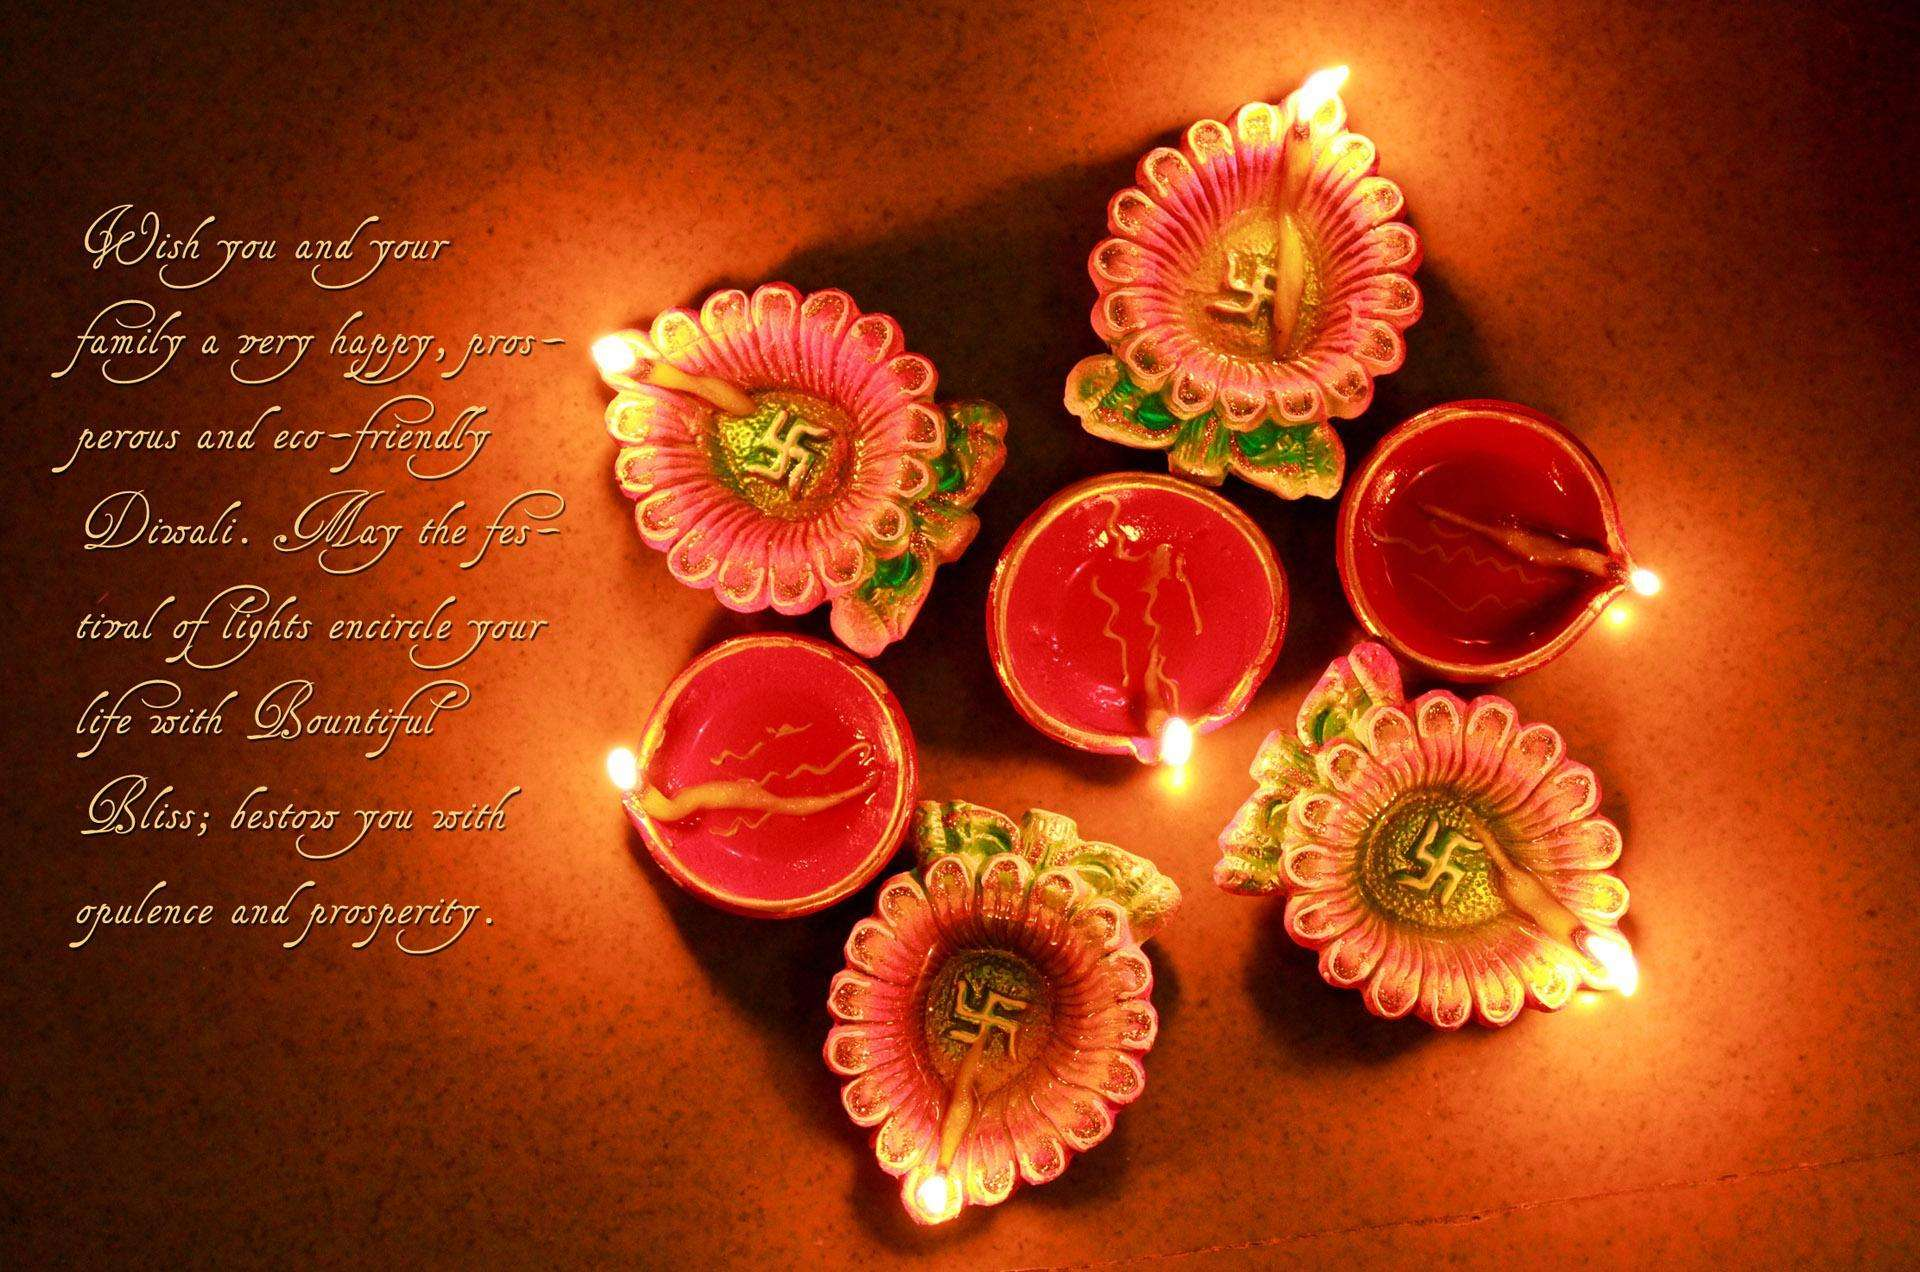 Happy diwali wishes greeting cards download diwali quotes images download diwali greeting card m4hsunfo Choice Image